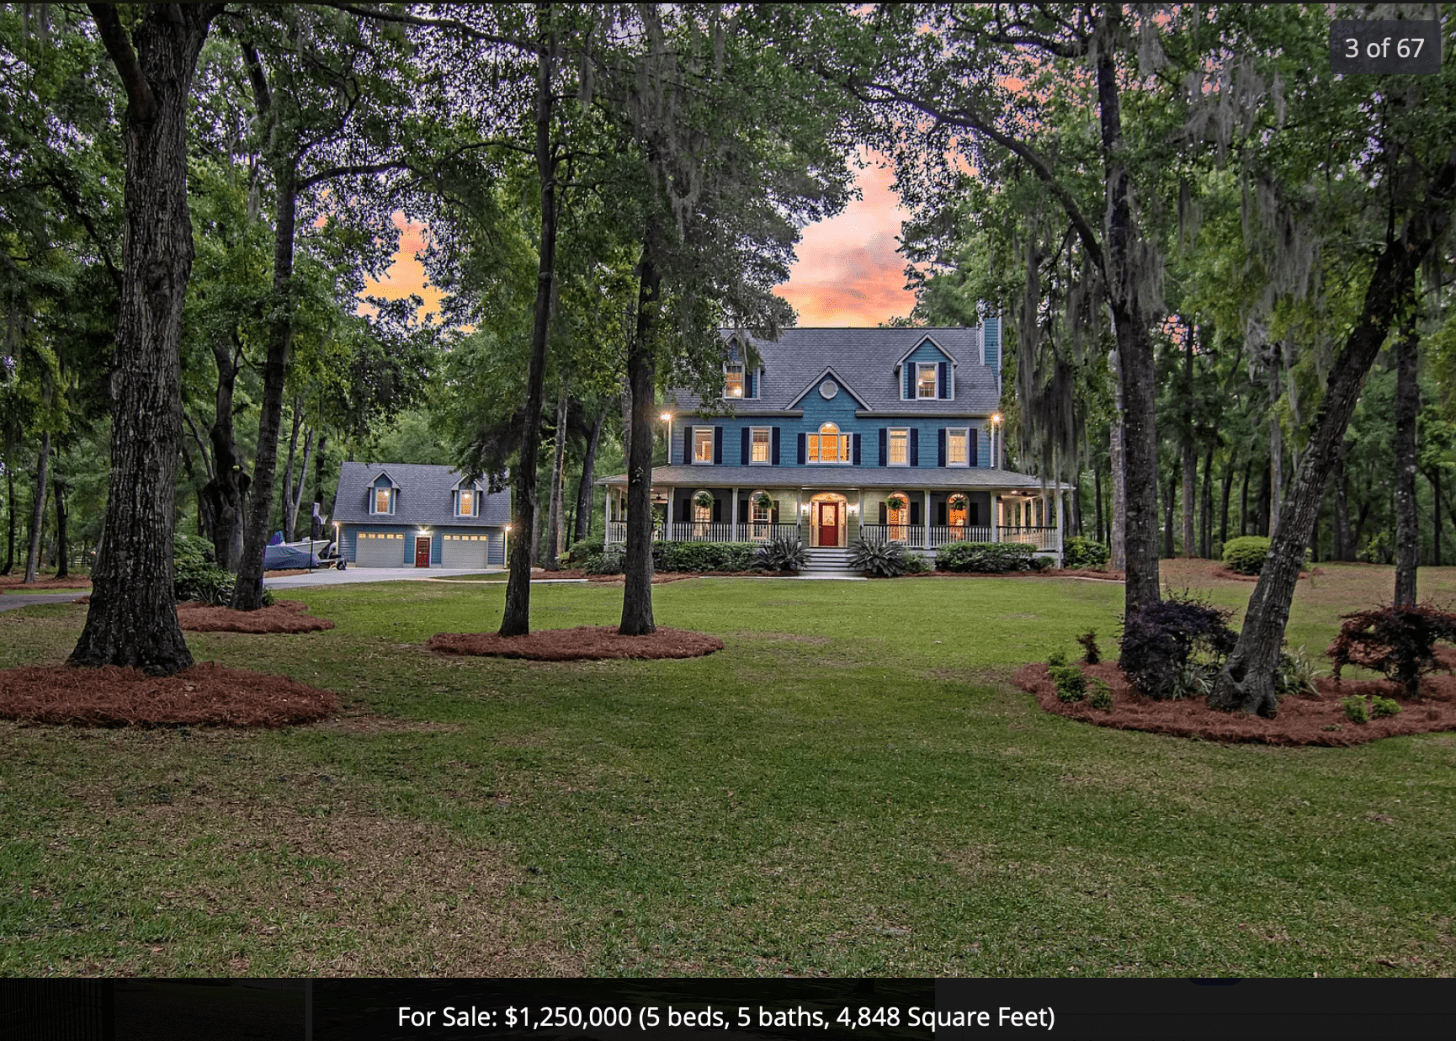 4141 Chisolm Rd, Johns Island, SC 29455